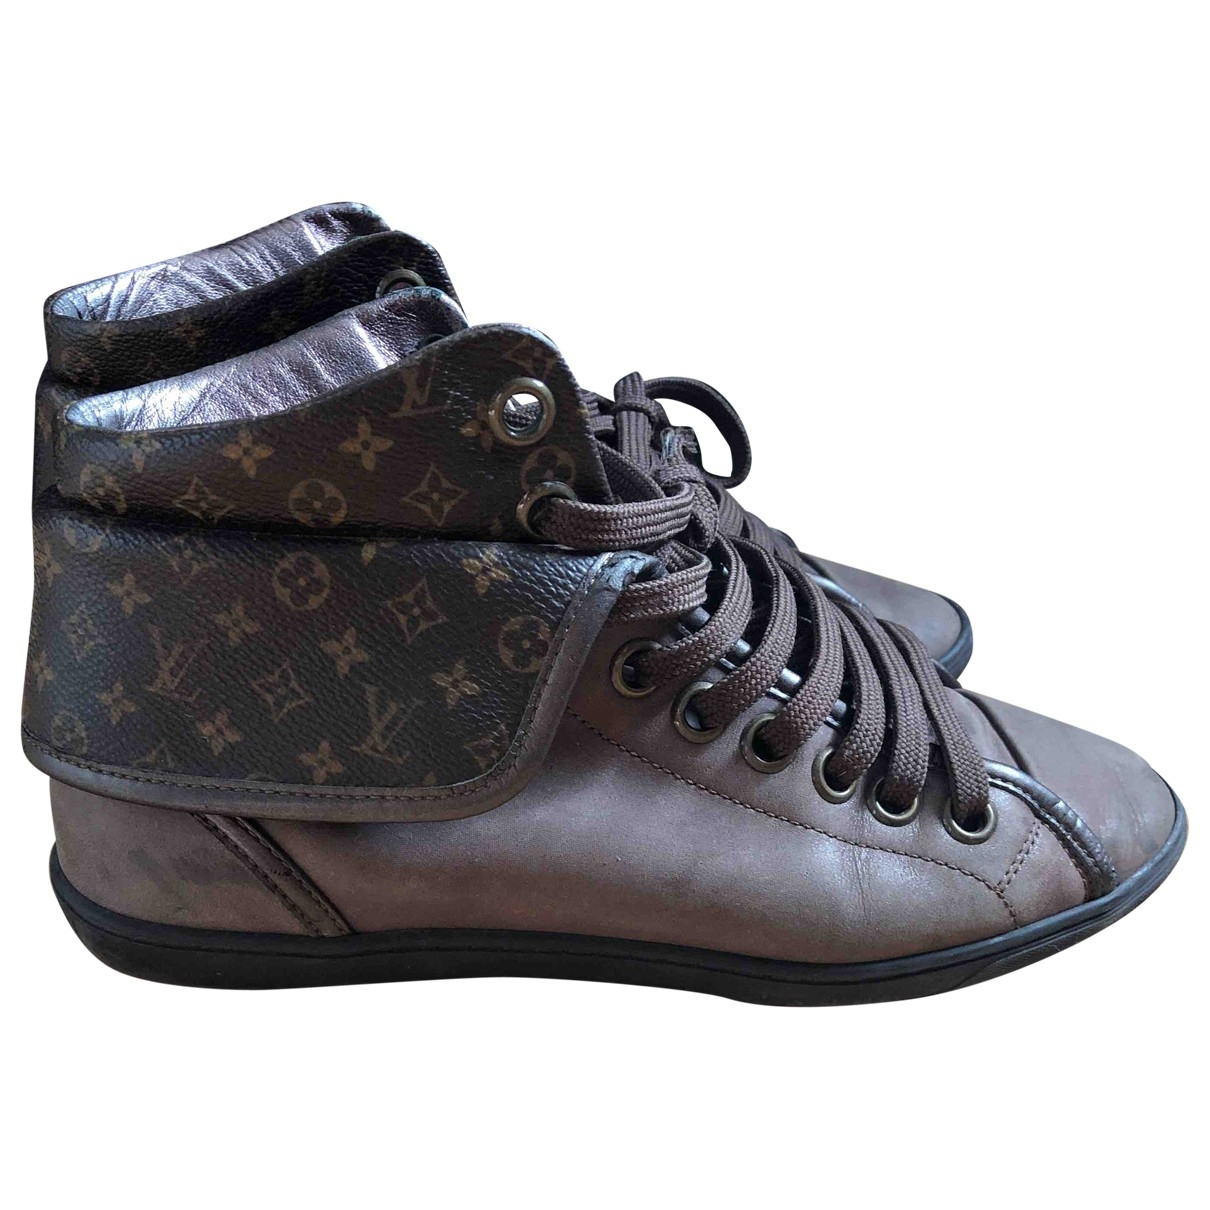 Louis Vuitton - Baskets   pour femme en cuir - marron